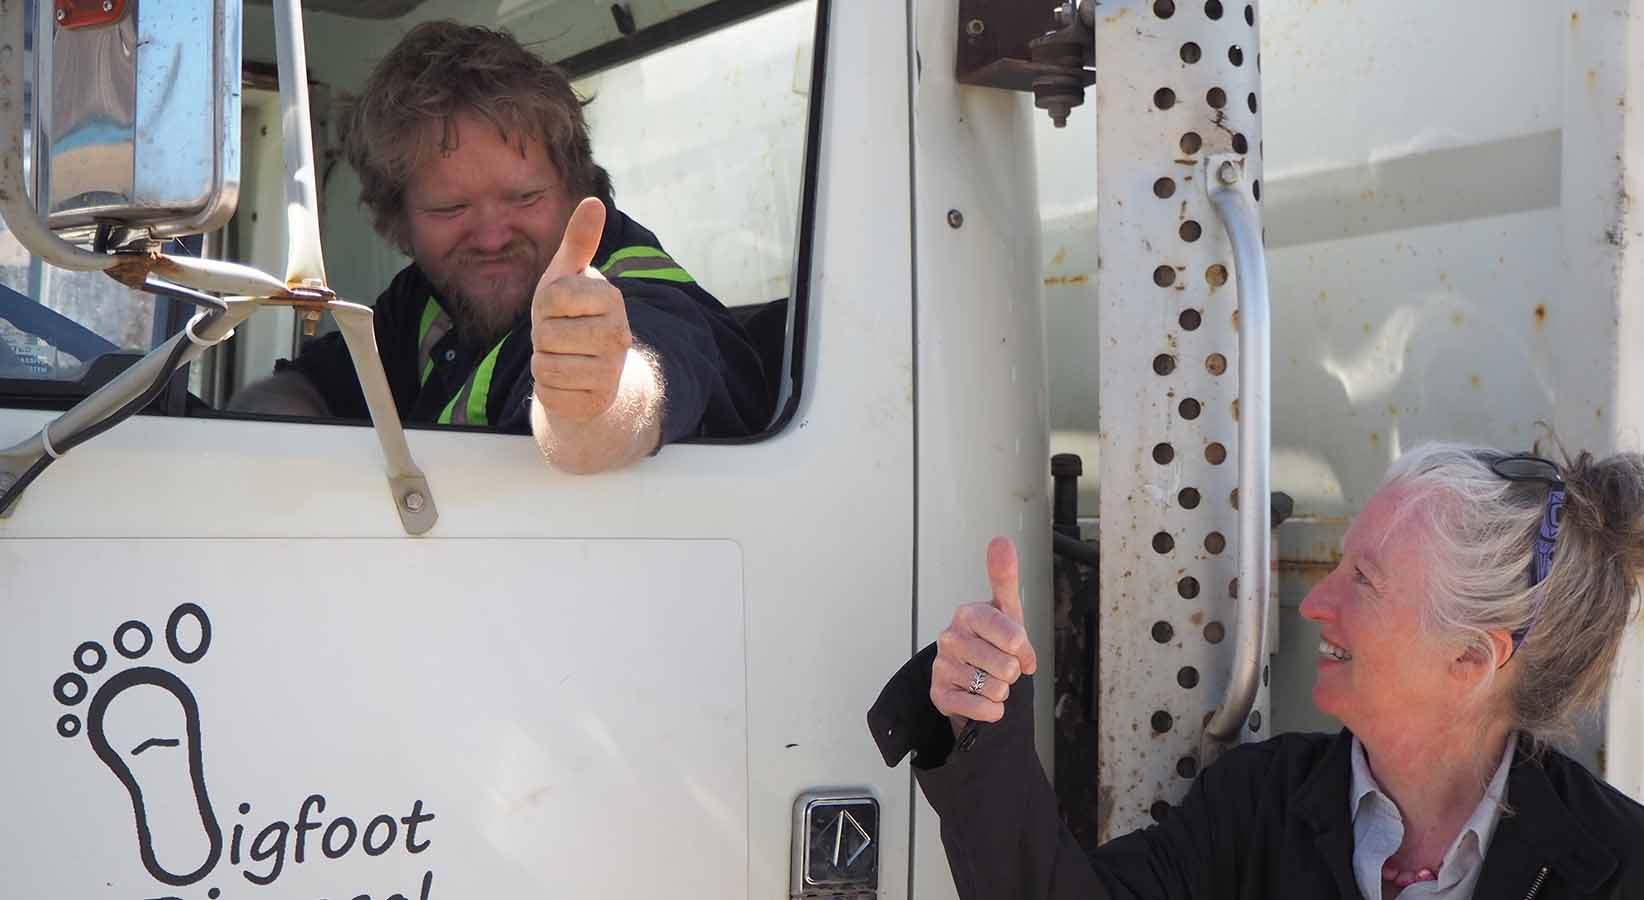 A man in a truck gives a woman an thumbs up